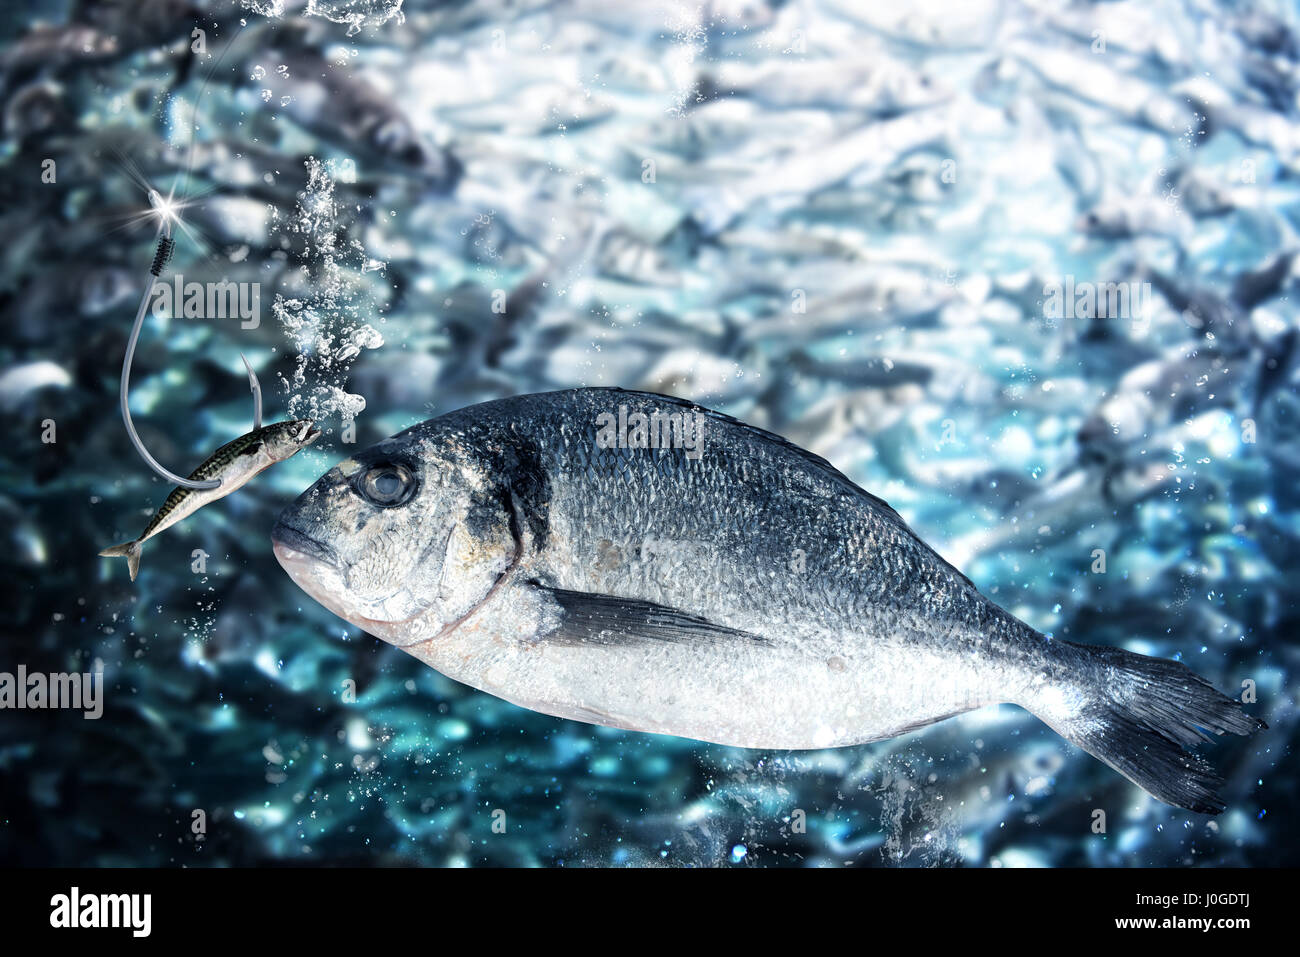 Fish takes the bait to lure - Stock Image